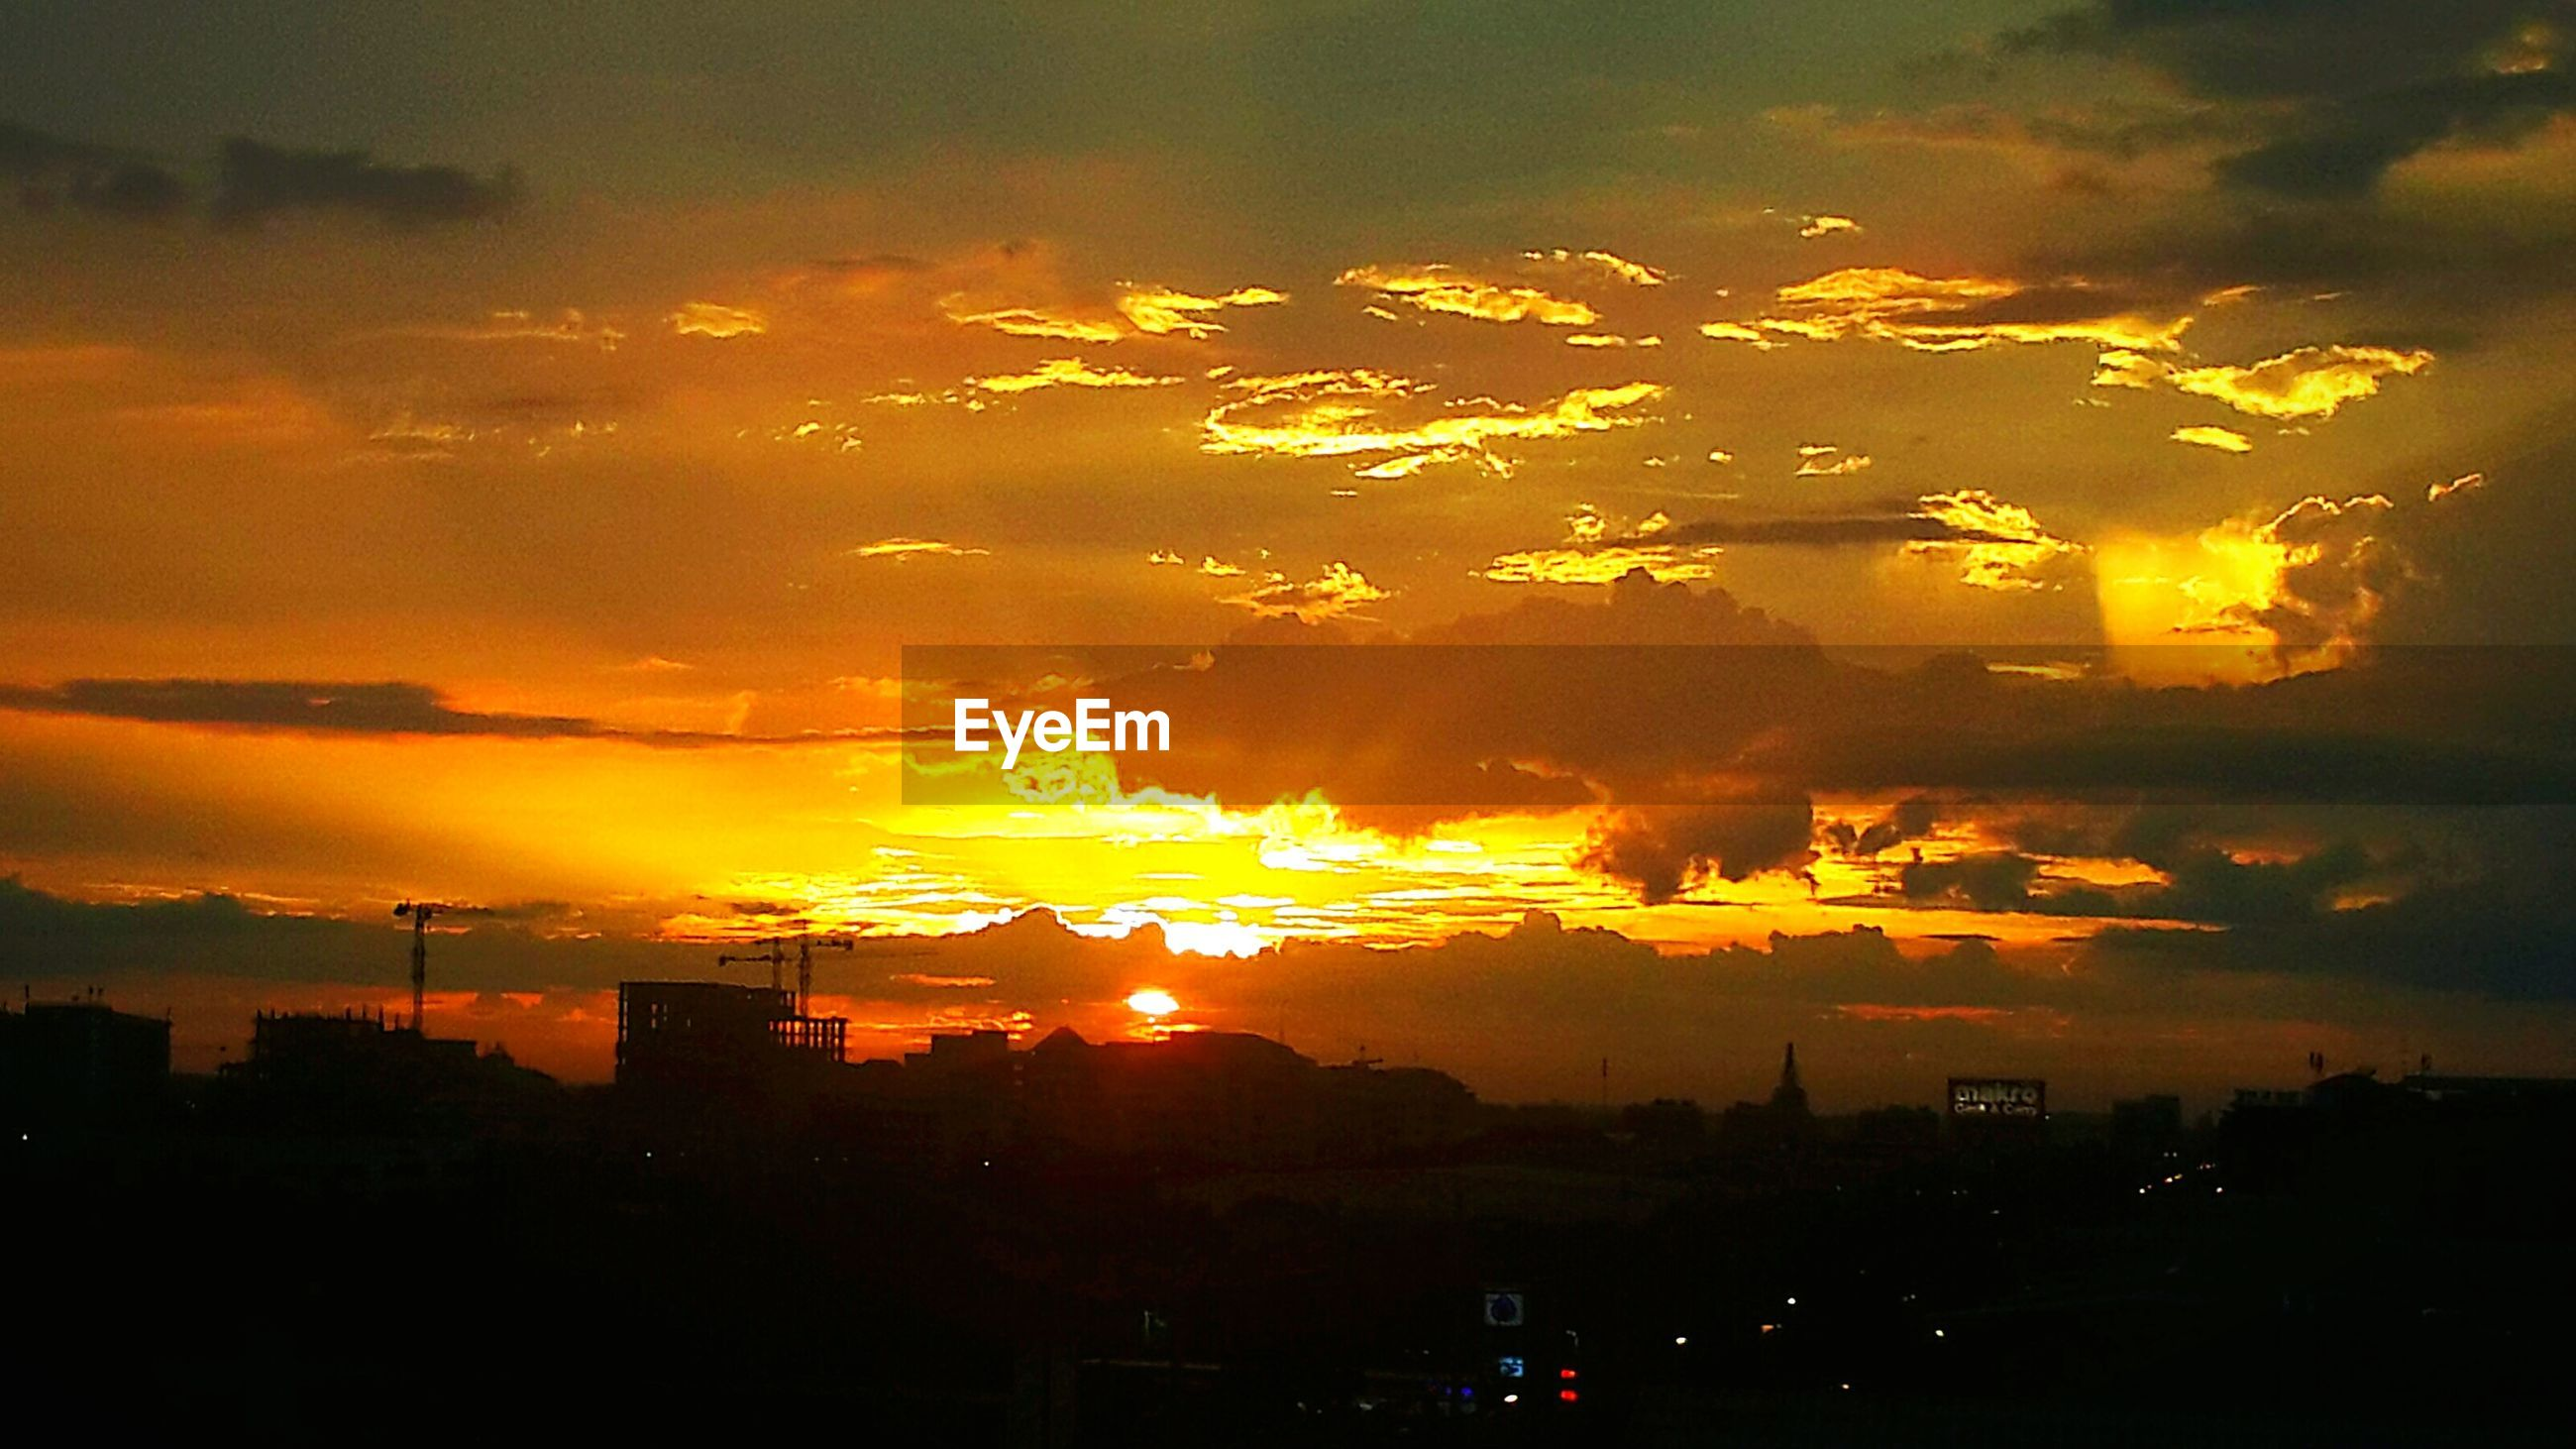 sunset, orange color, built structure, architecture, city, building exterior, cloud - sky, silhouette, scenics, sky, sun, beauty in nature, cityscape, romantic sky, outdoors, sunbeam, dramatic sky, urban skyline, majestic, atmospheric mood, atmosphere, cloudy, nature, city life, tranquil scene, tranquility, vibrant color, storm cloud, tall - high, outline, cloudscape